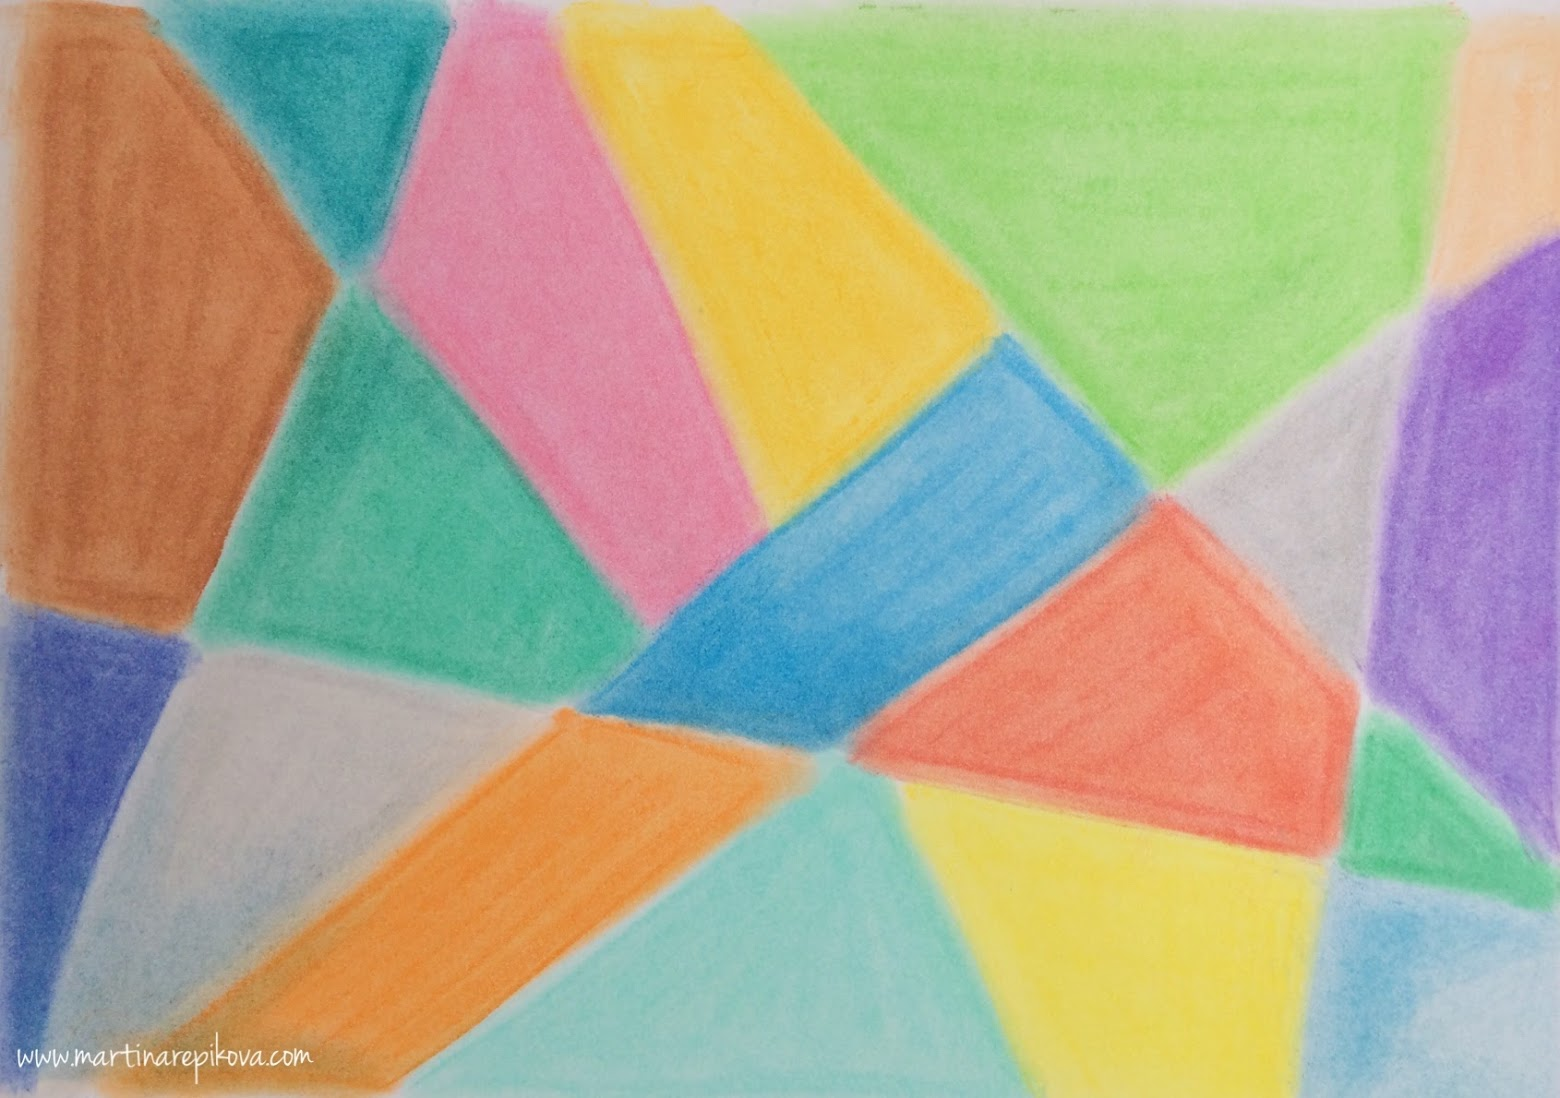 Geometry (a pastel drawing)